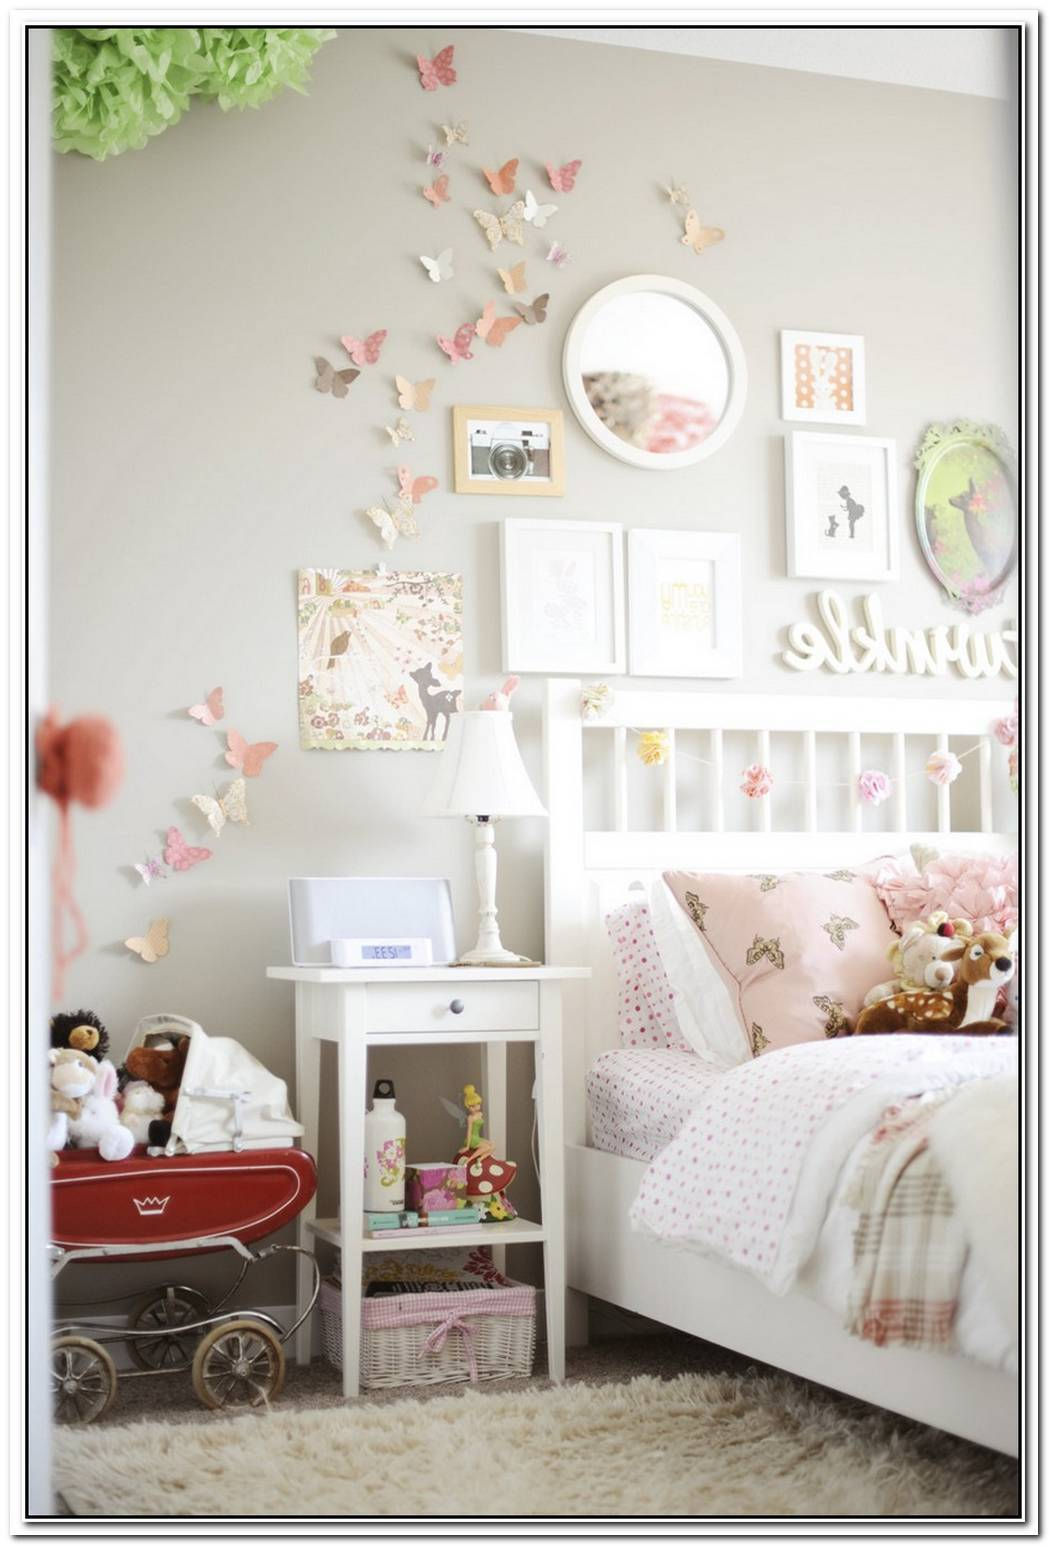 15 Playful And Chic Tree Wall Decals